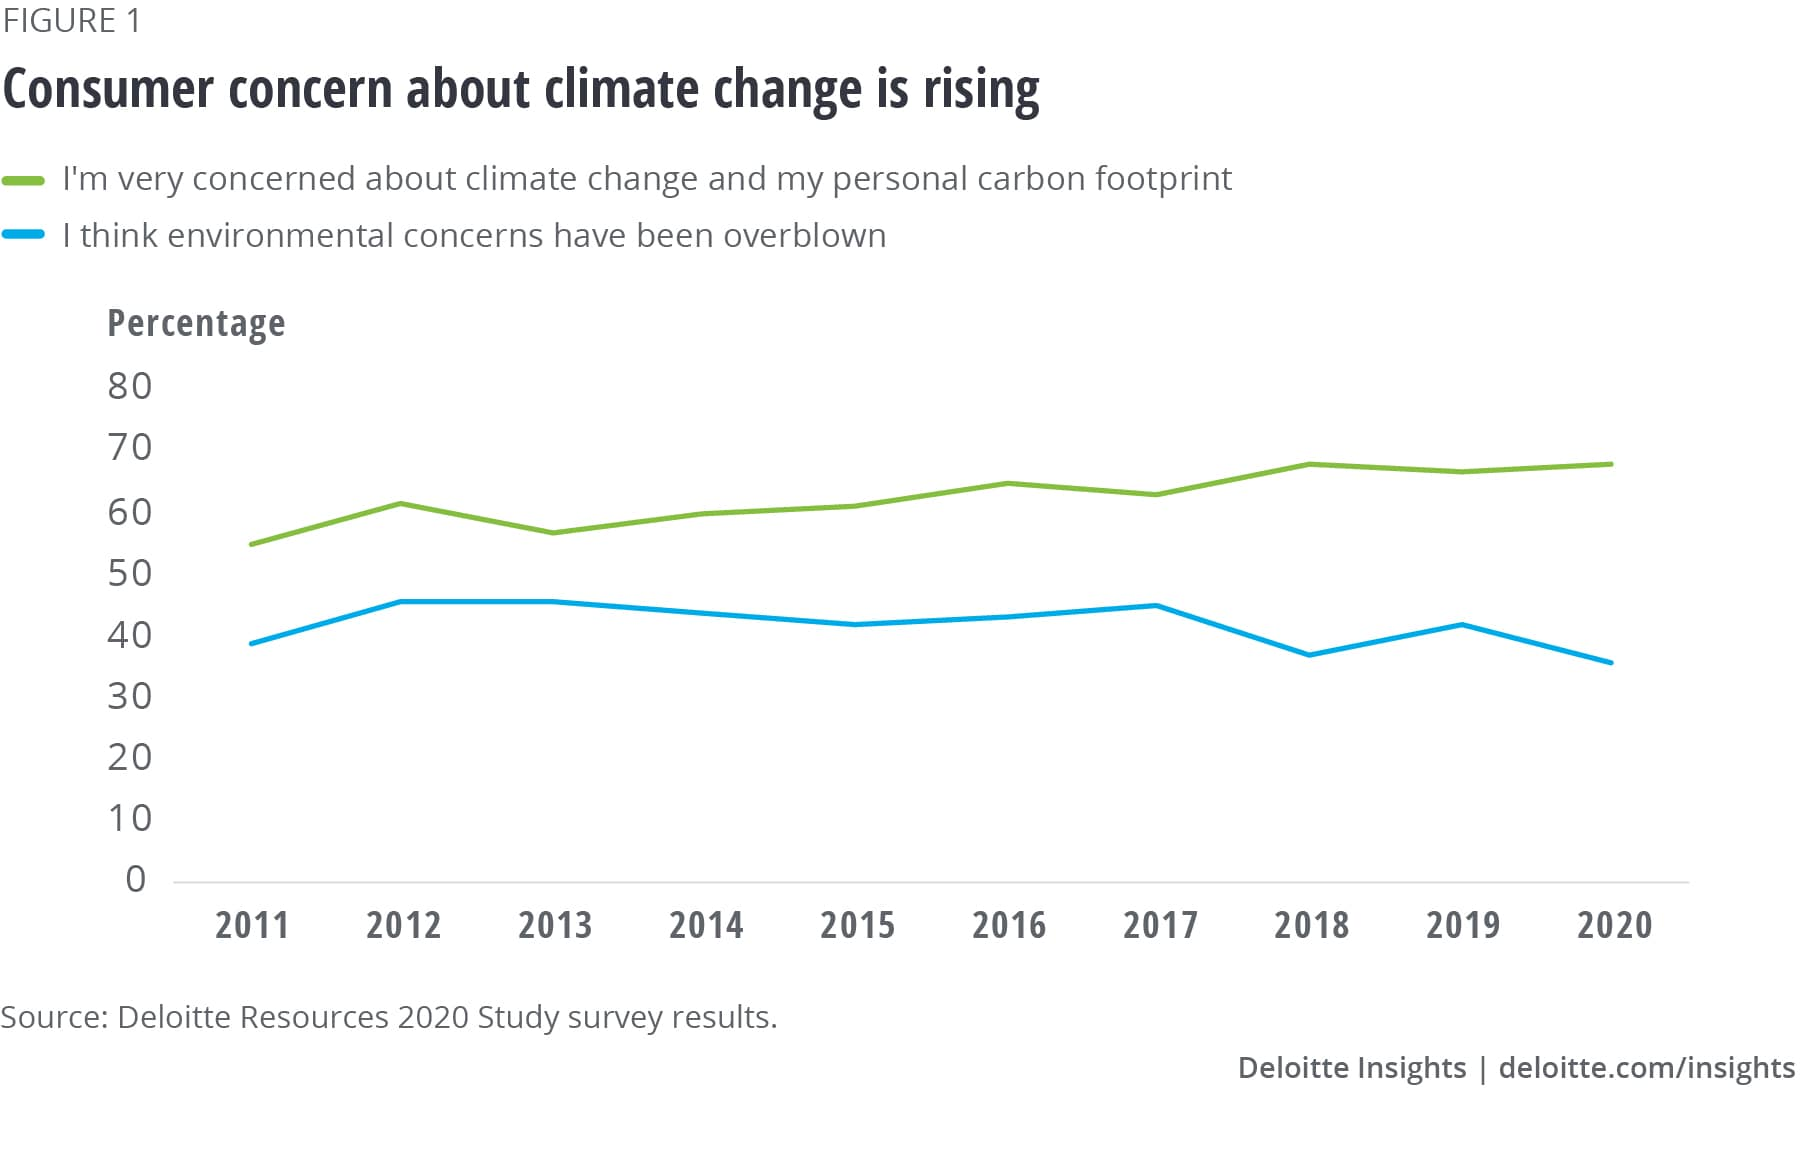 Consumer concern about climate change is rising